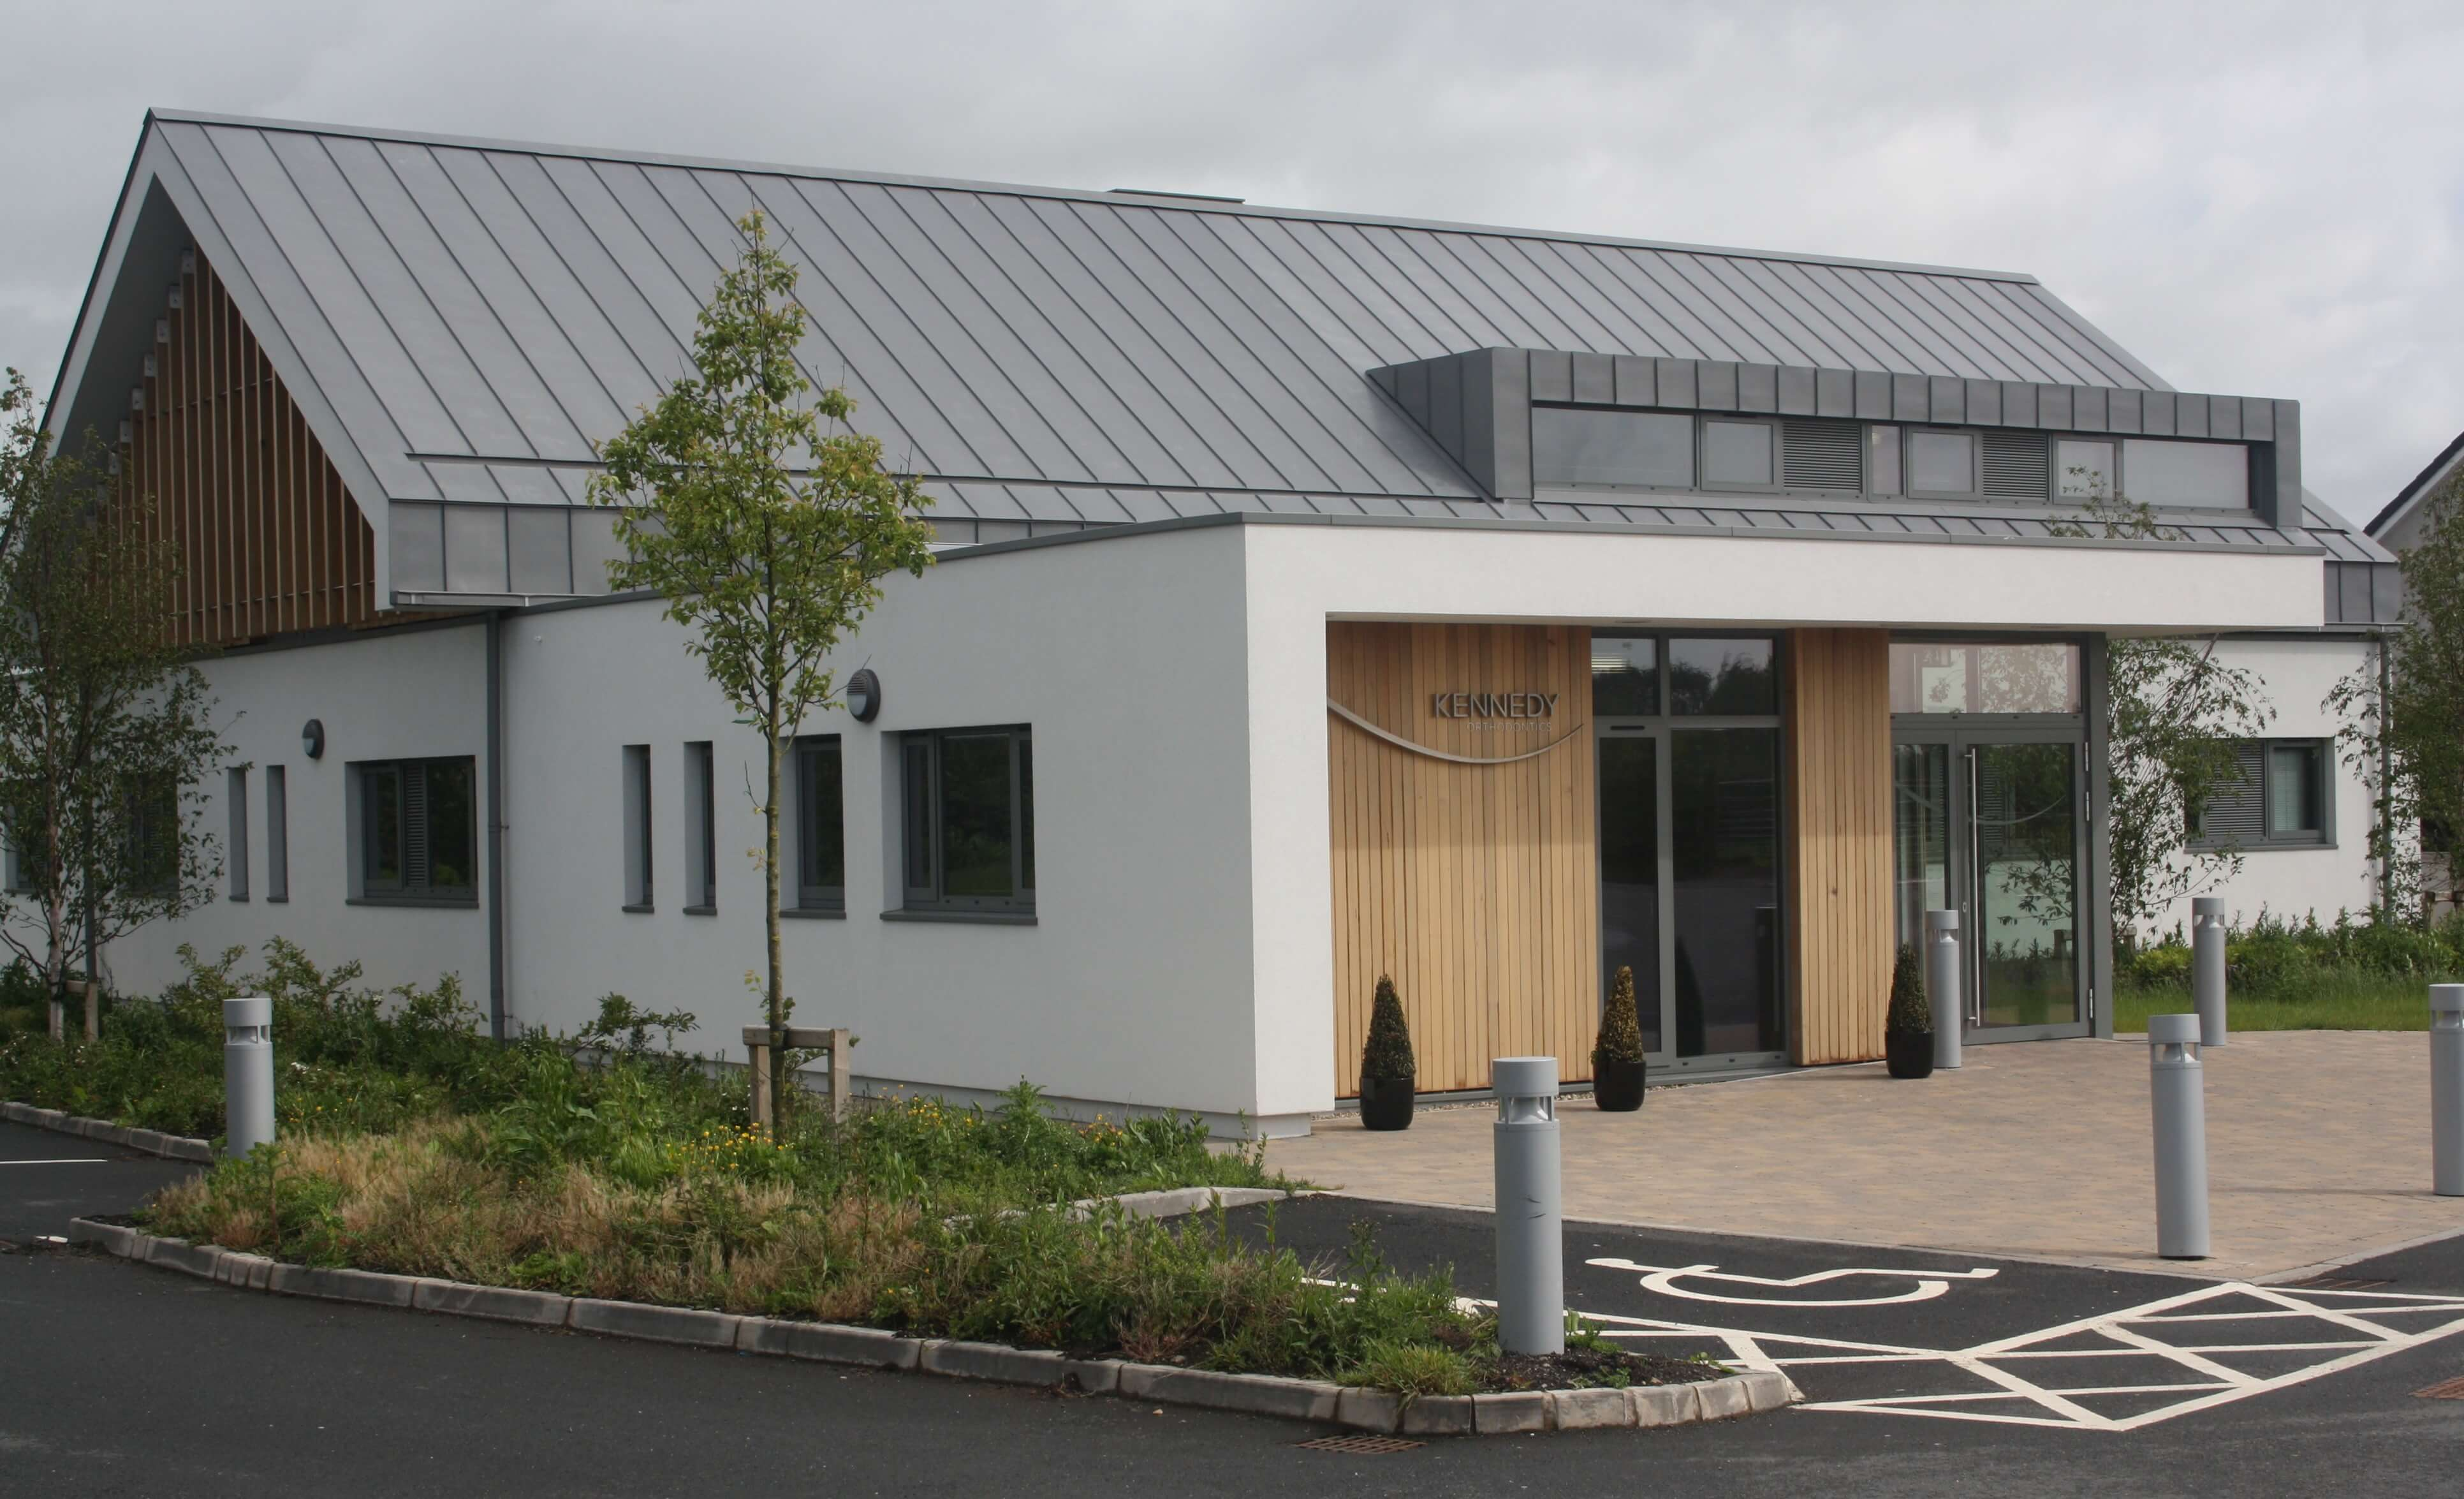 PROJECT: KENNEDY ORTHODONTICS, BALLYMENA ARCHITECT: HALL BLACK DOUGLAS ARCHITECTS MATERIAL. VM QUARTZ PLUS SYSTEM. TRADITIONAL STANDING SEAM